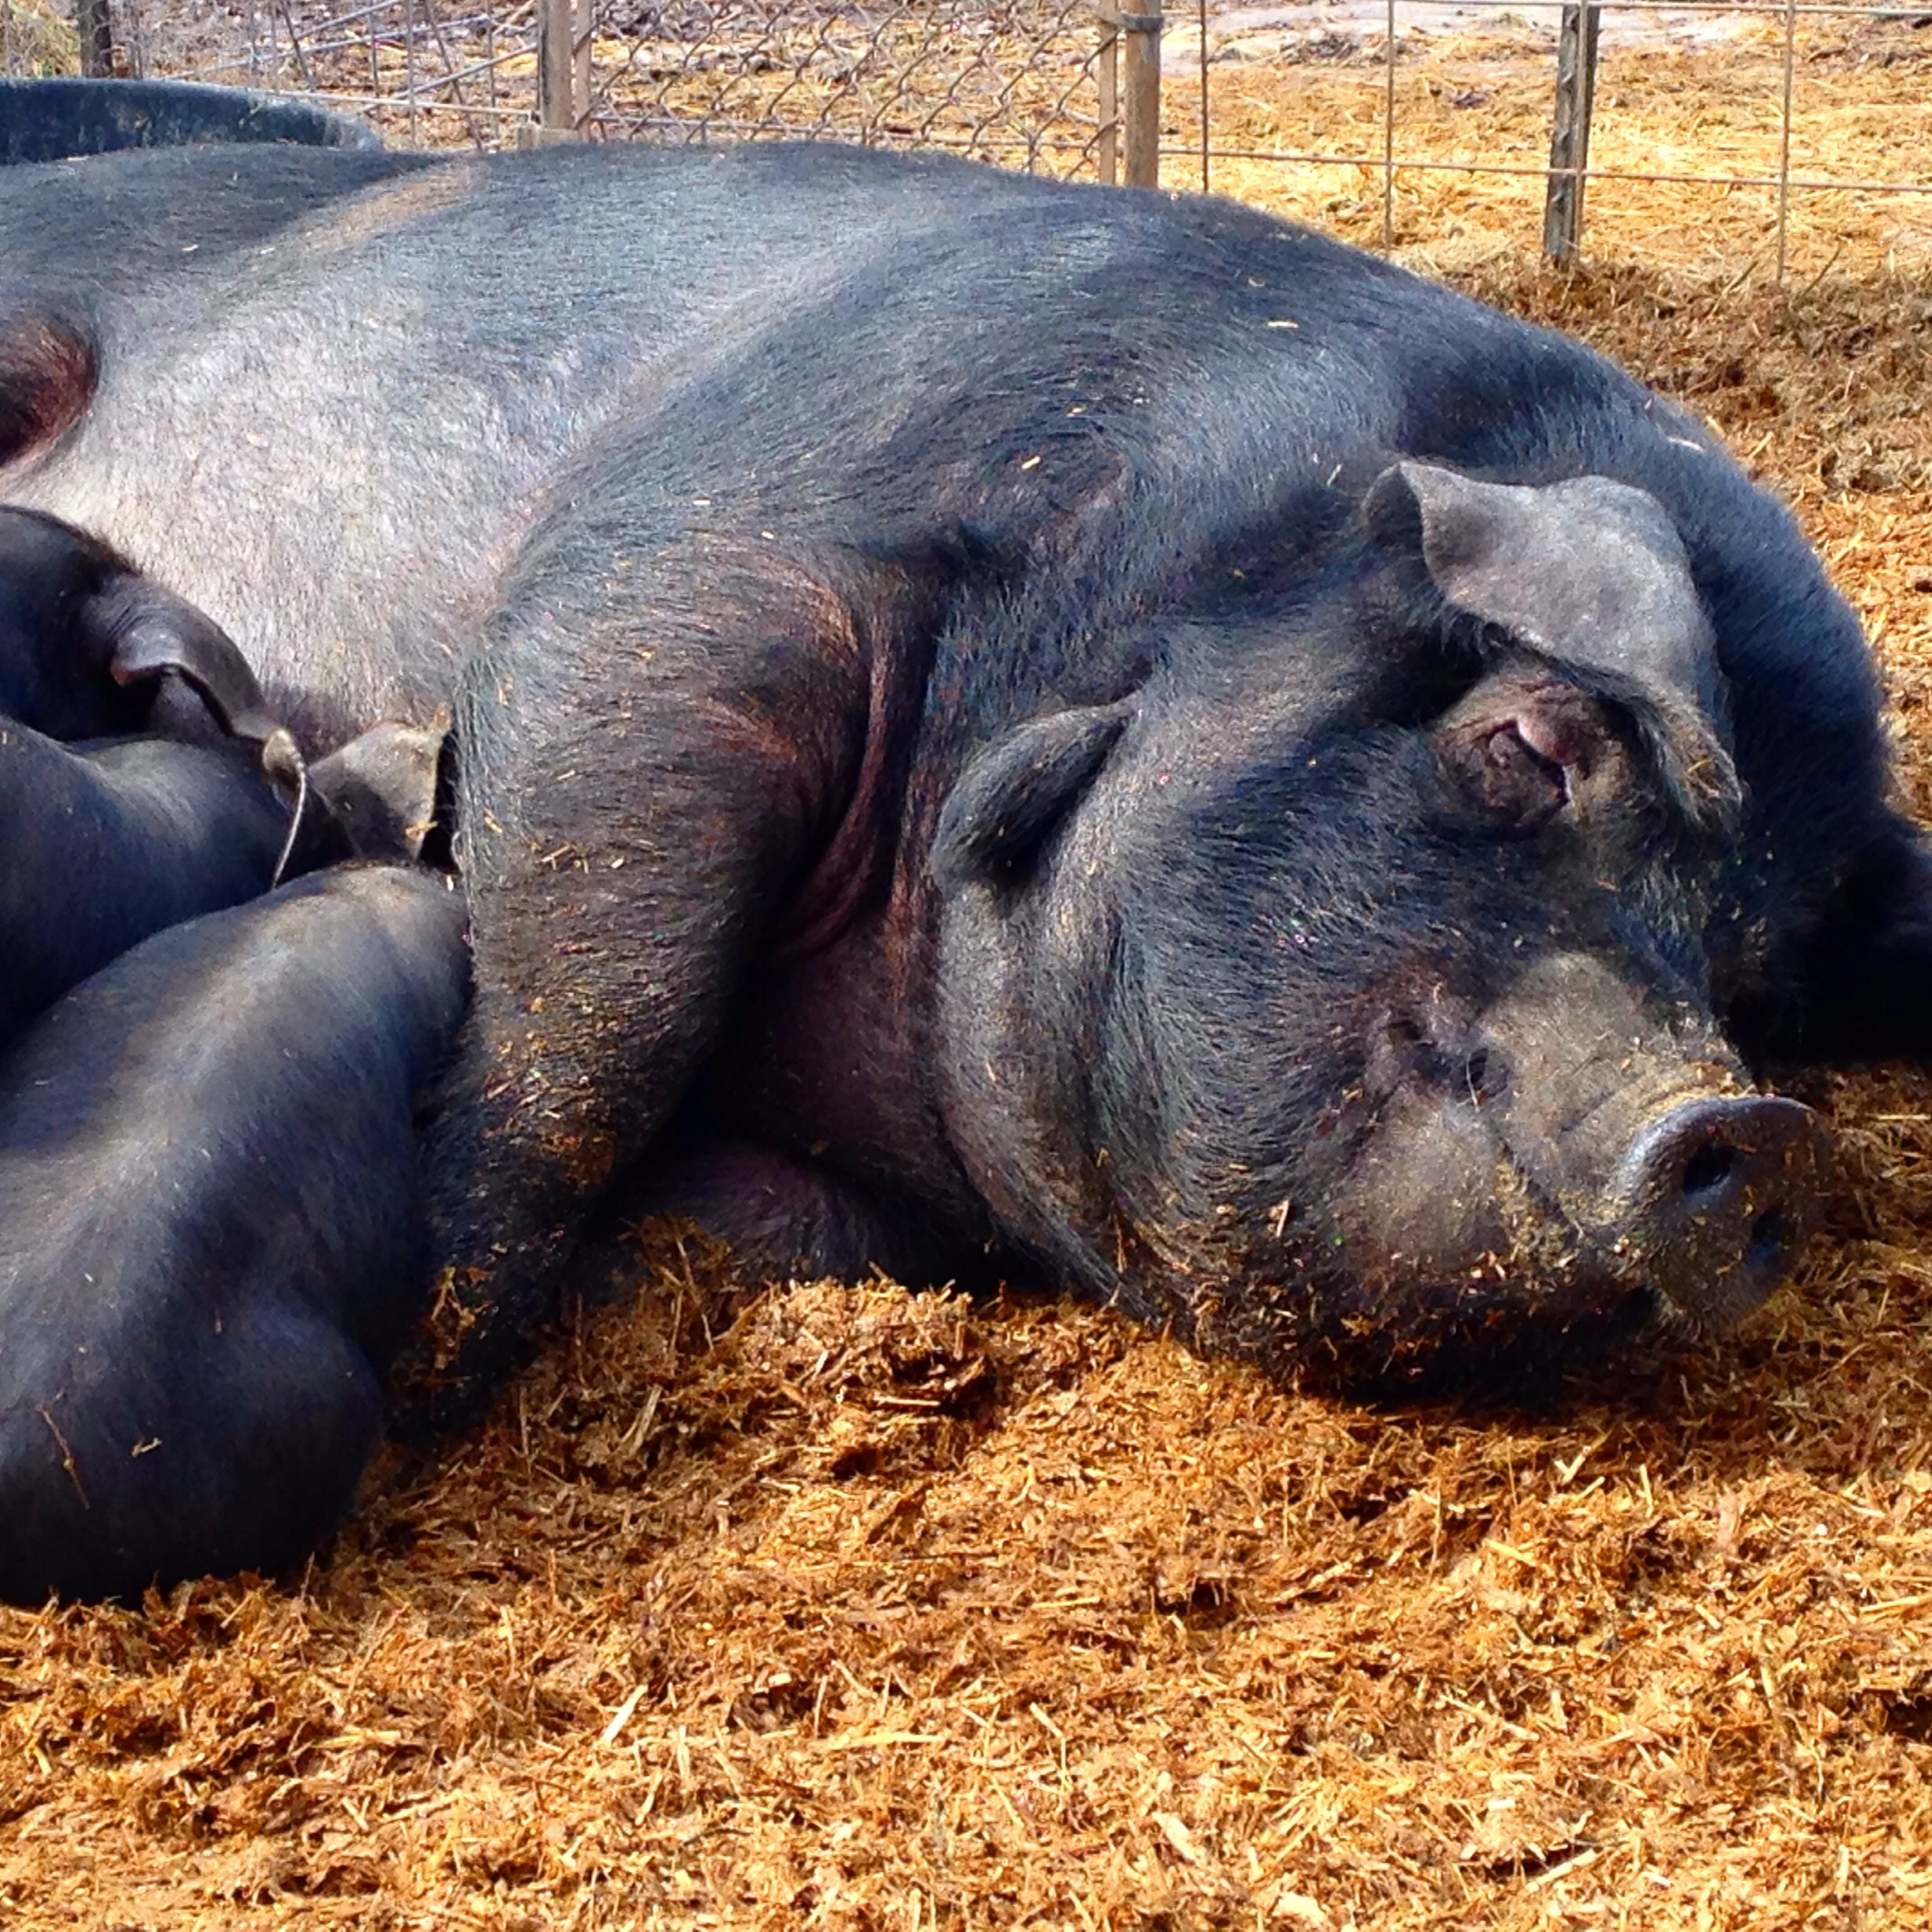 Petunia likes to feed her piglets for an EXTENDED period of time...